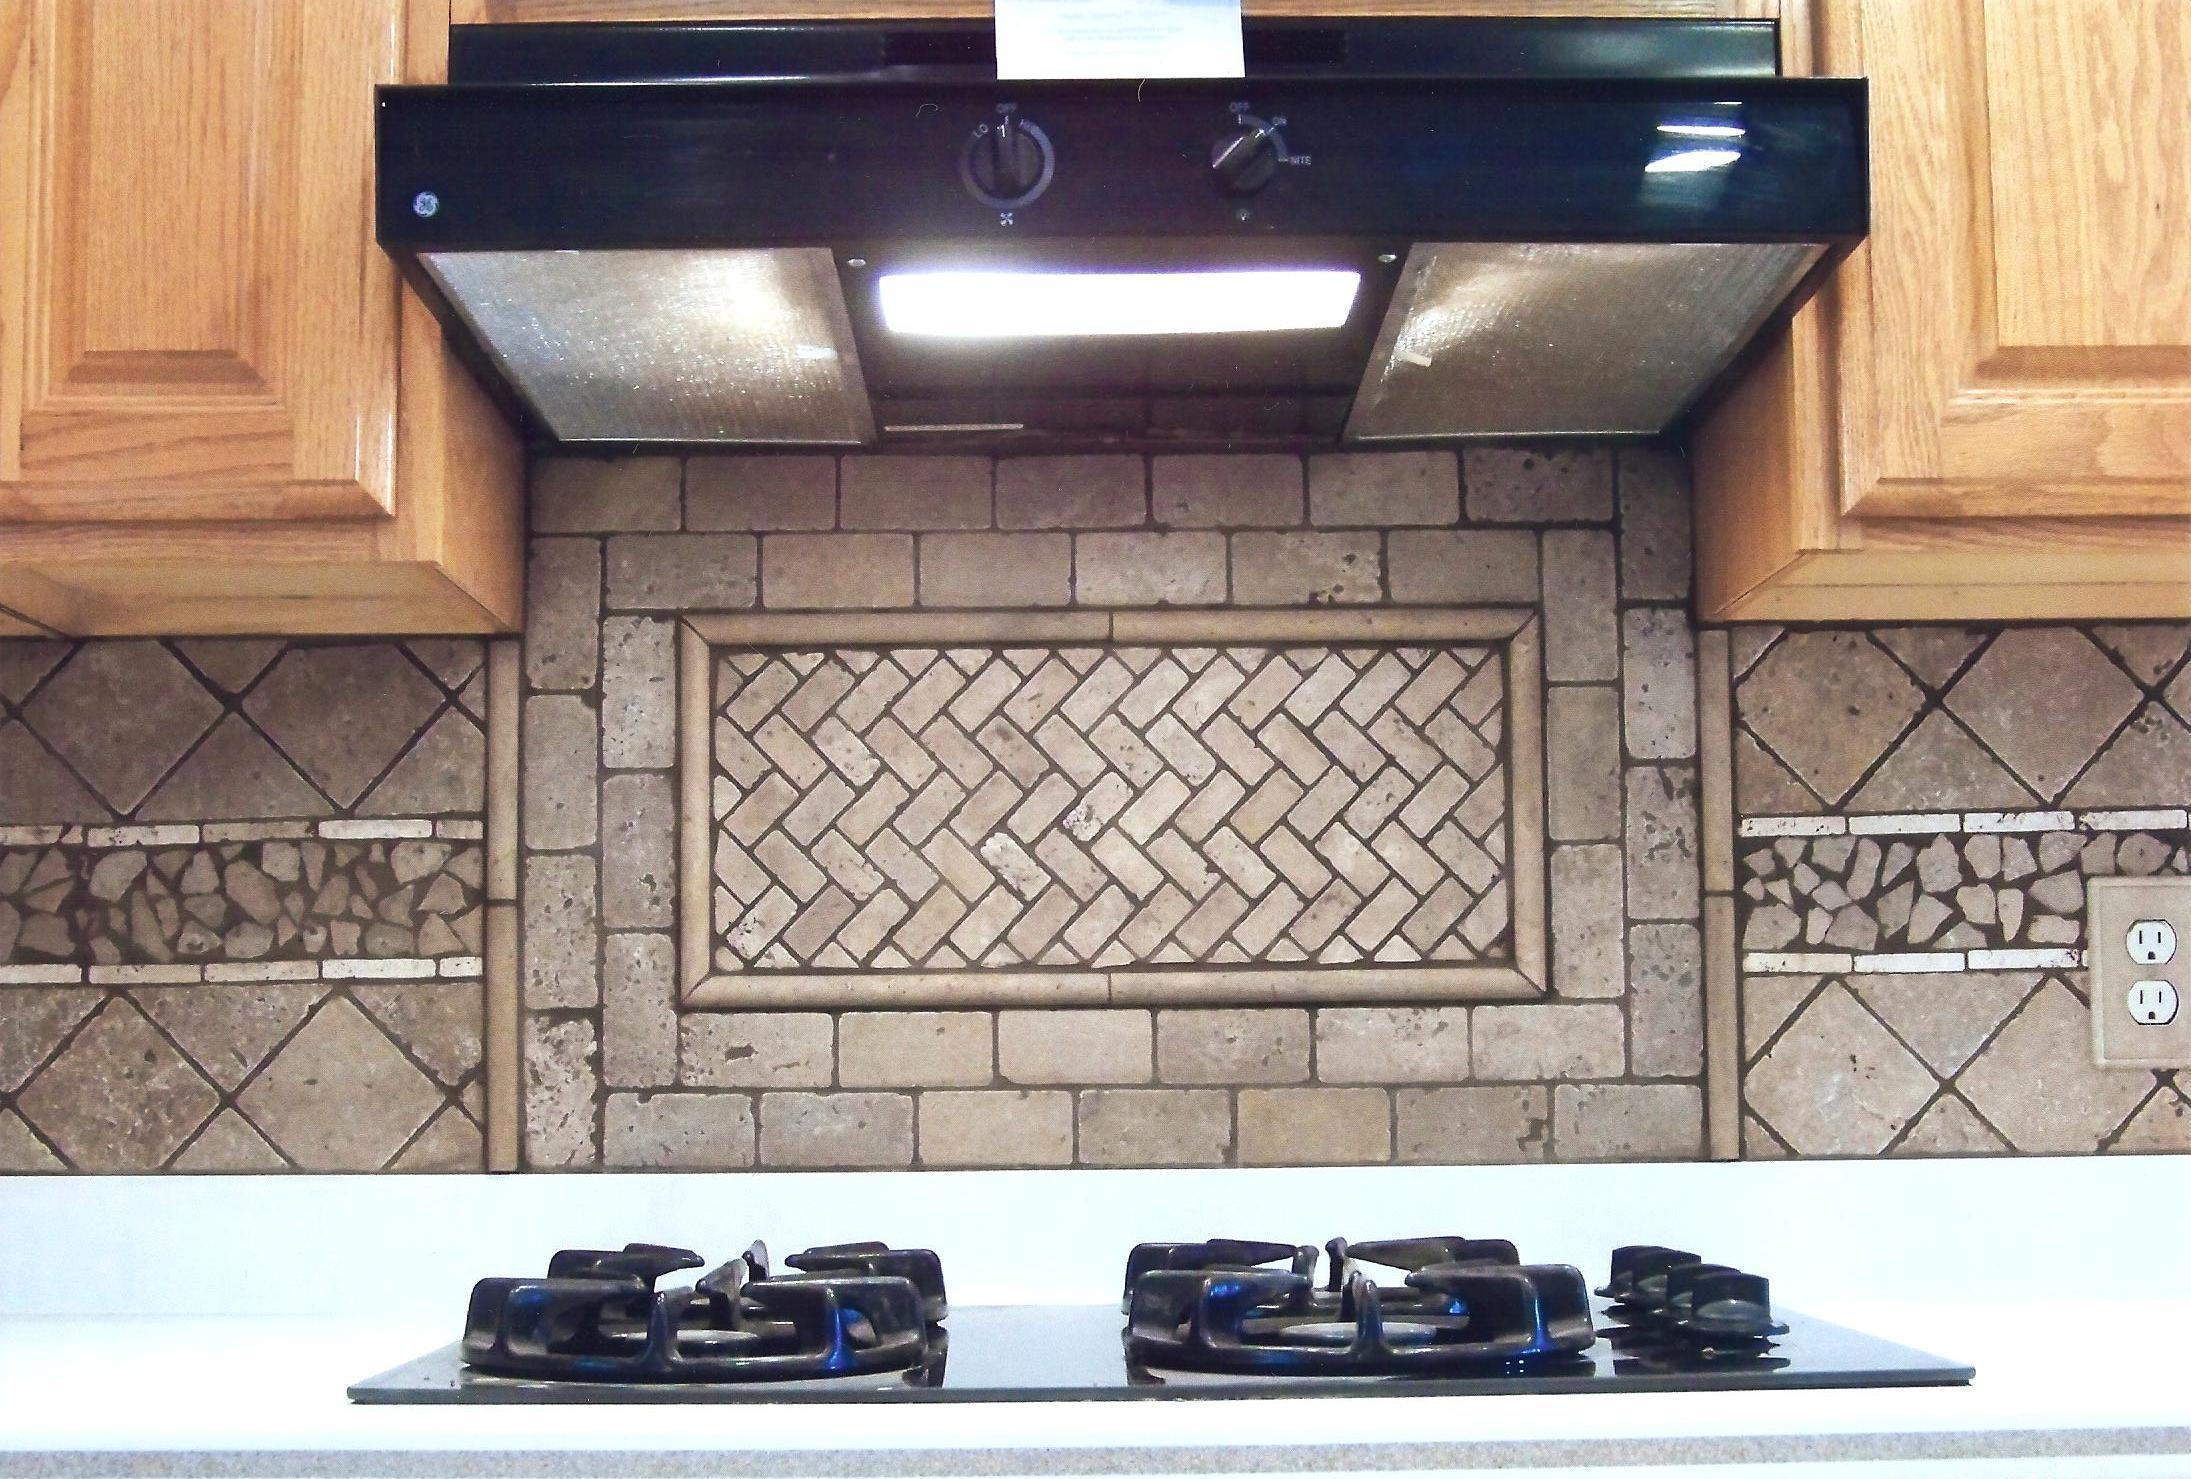 Natural Stone Backsplash Tile : sciencewikis.org